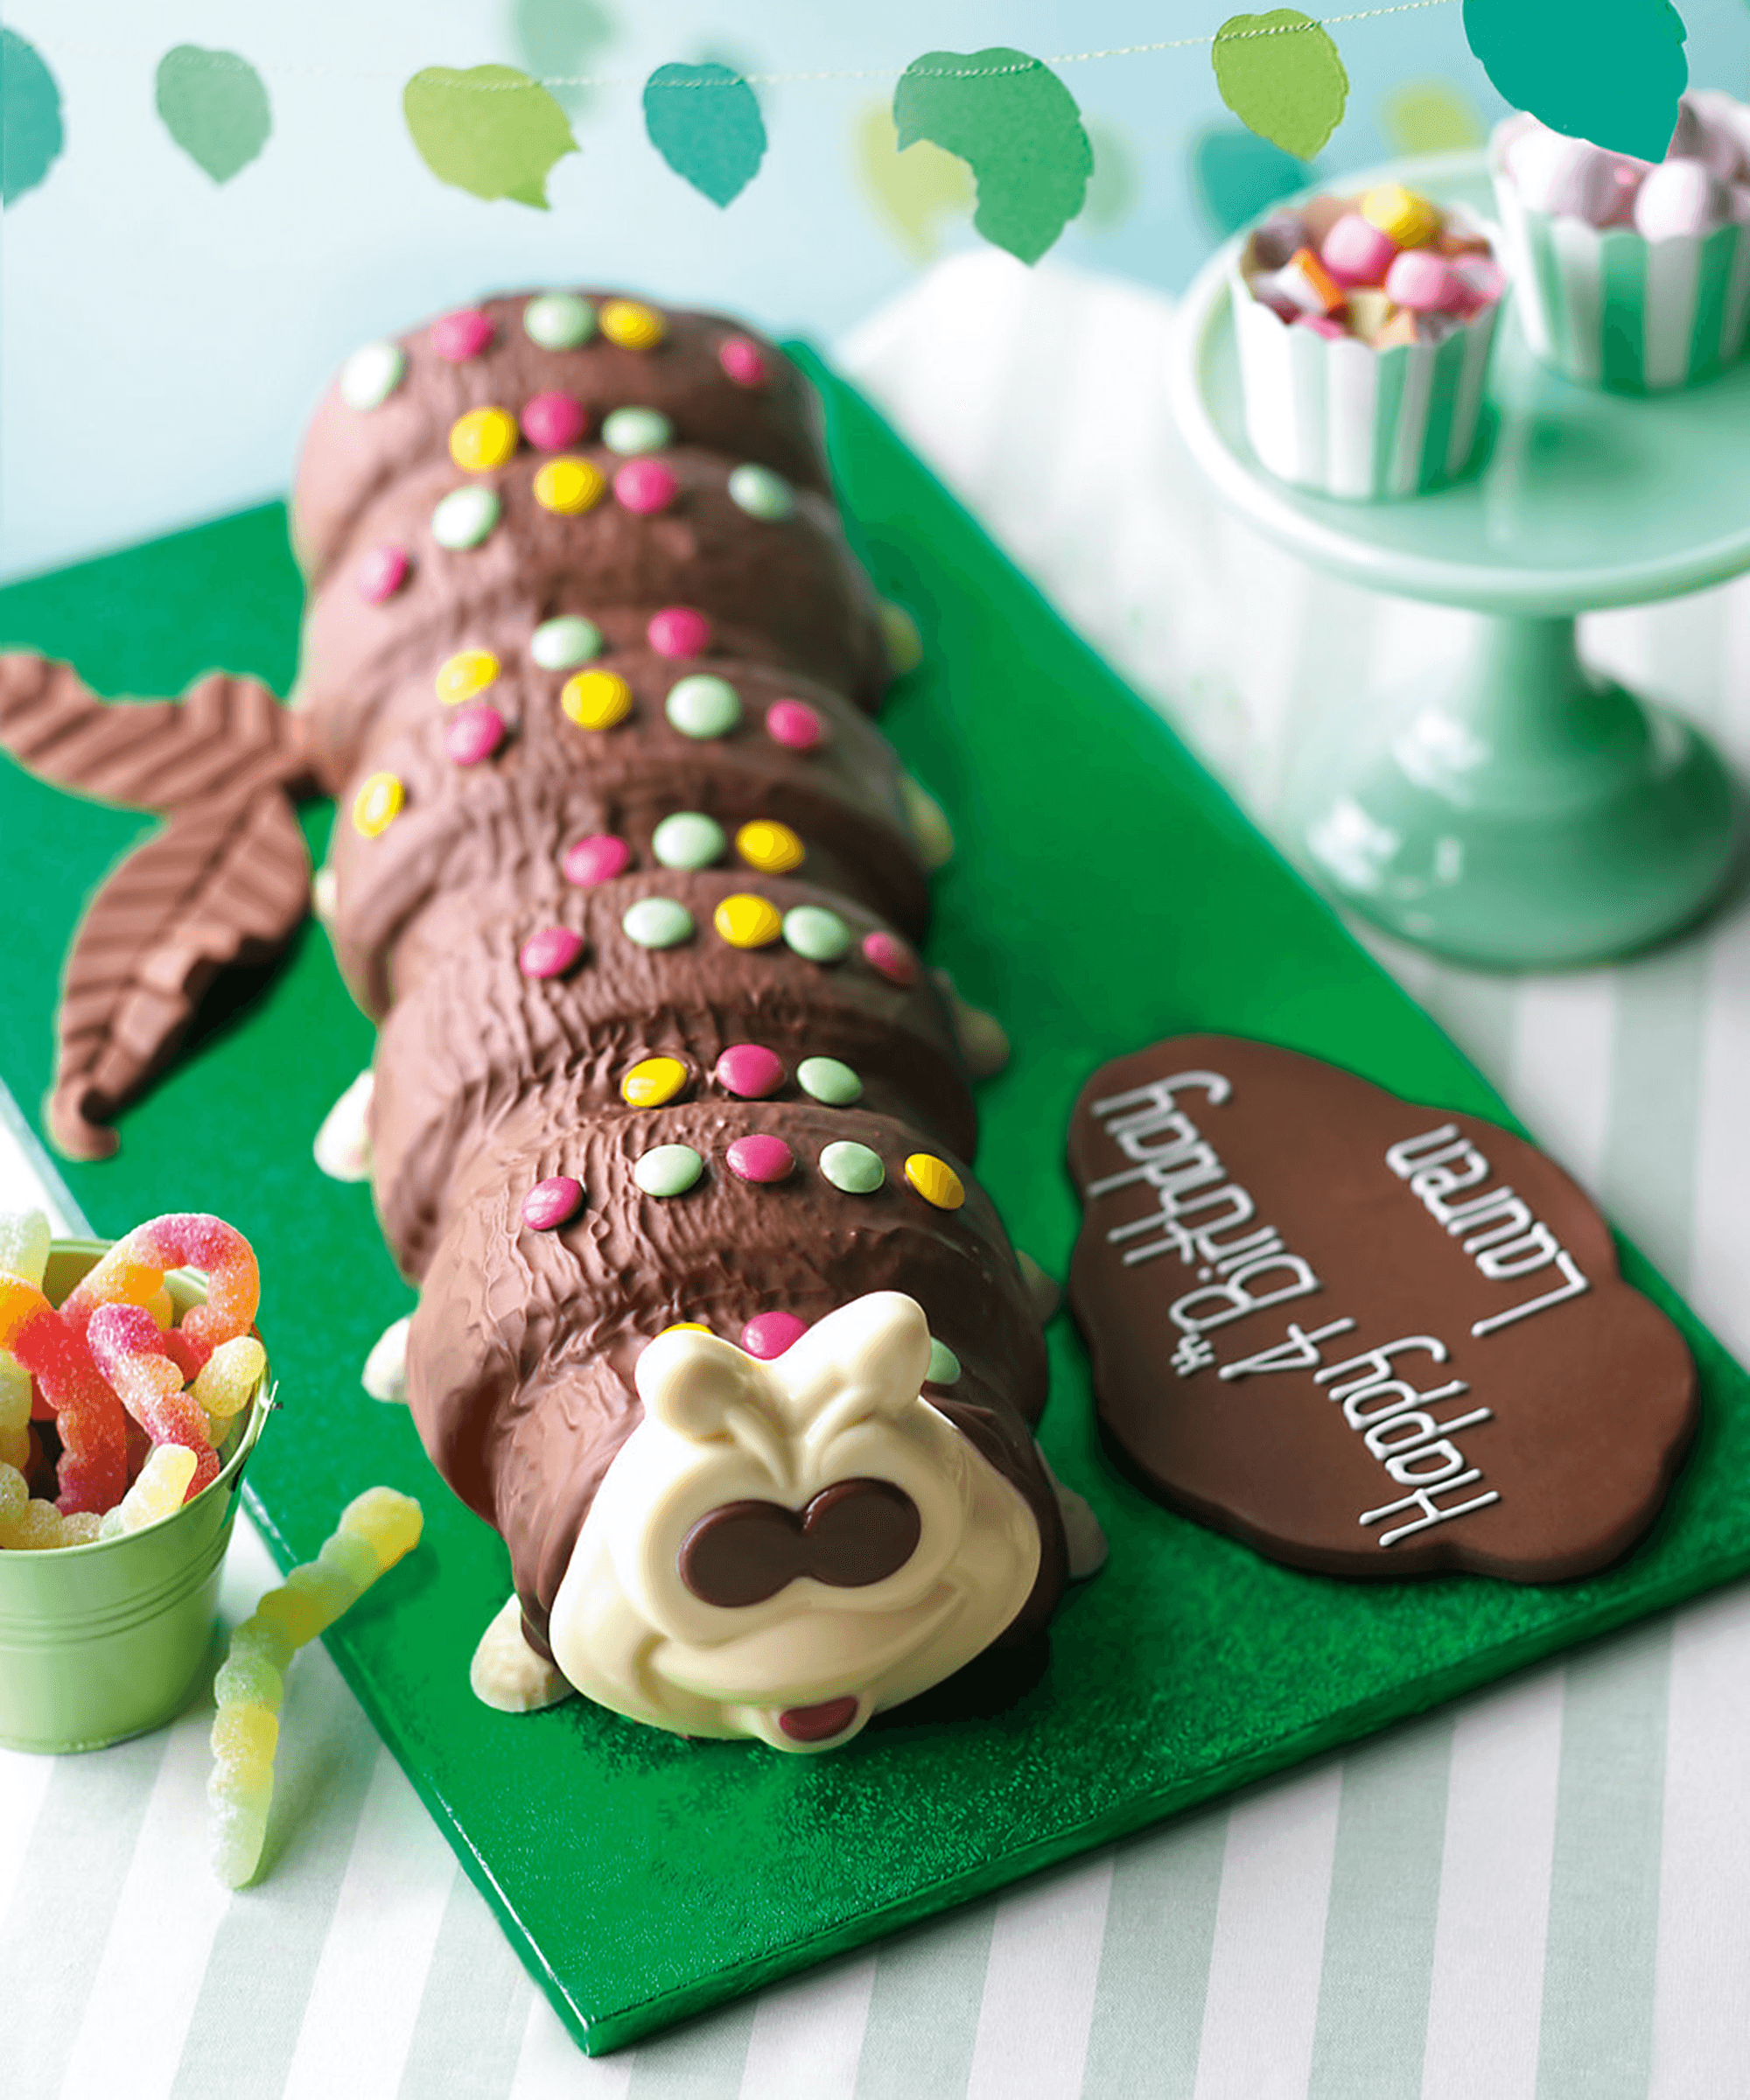 image Asda Launches Cake That's Twice As Big As Colin The Caterpillar